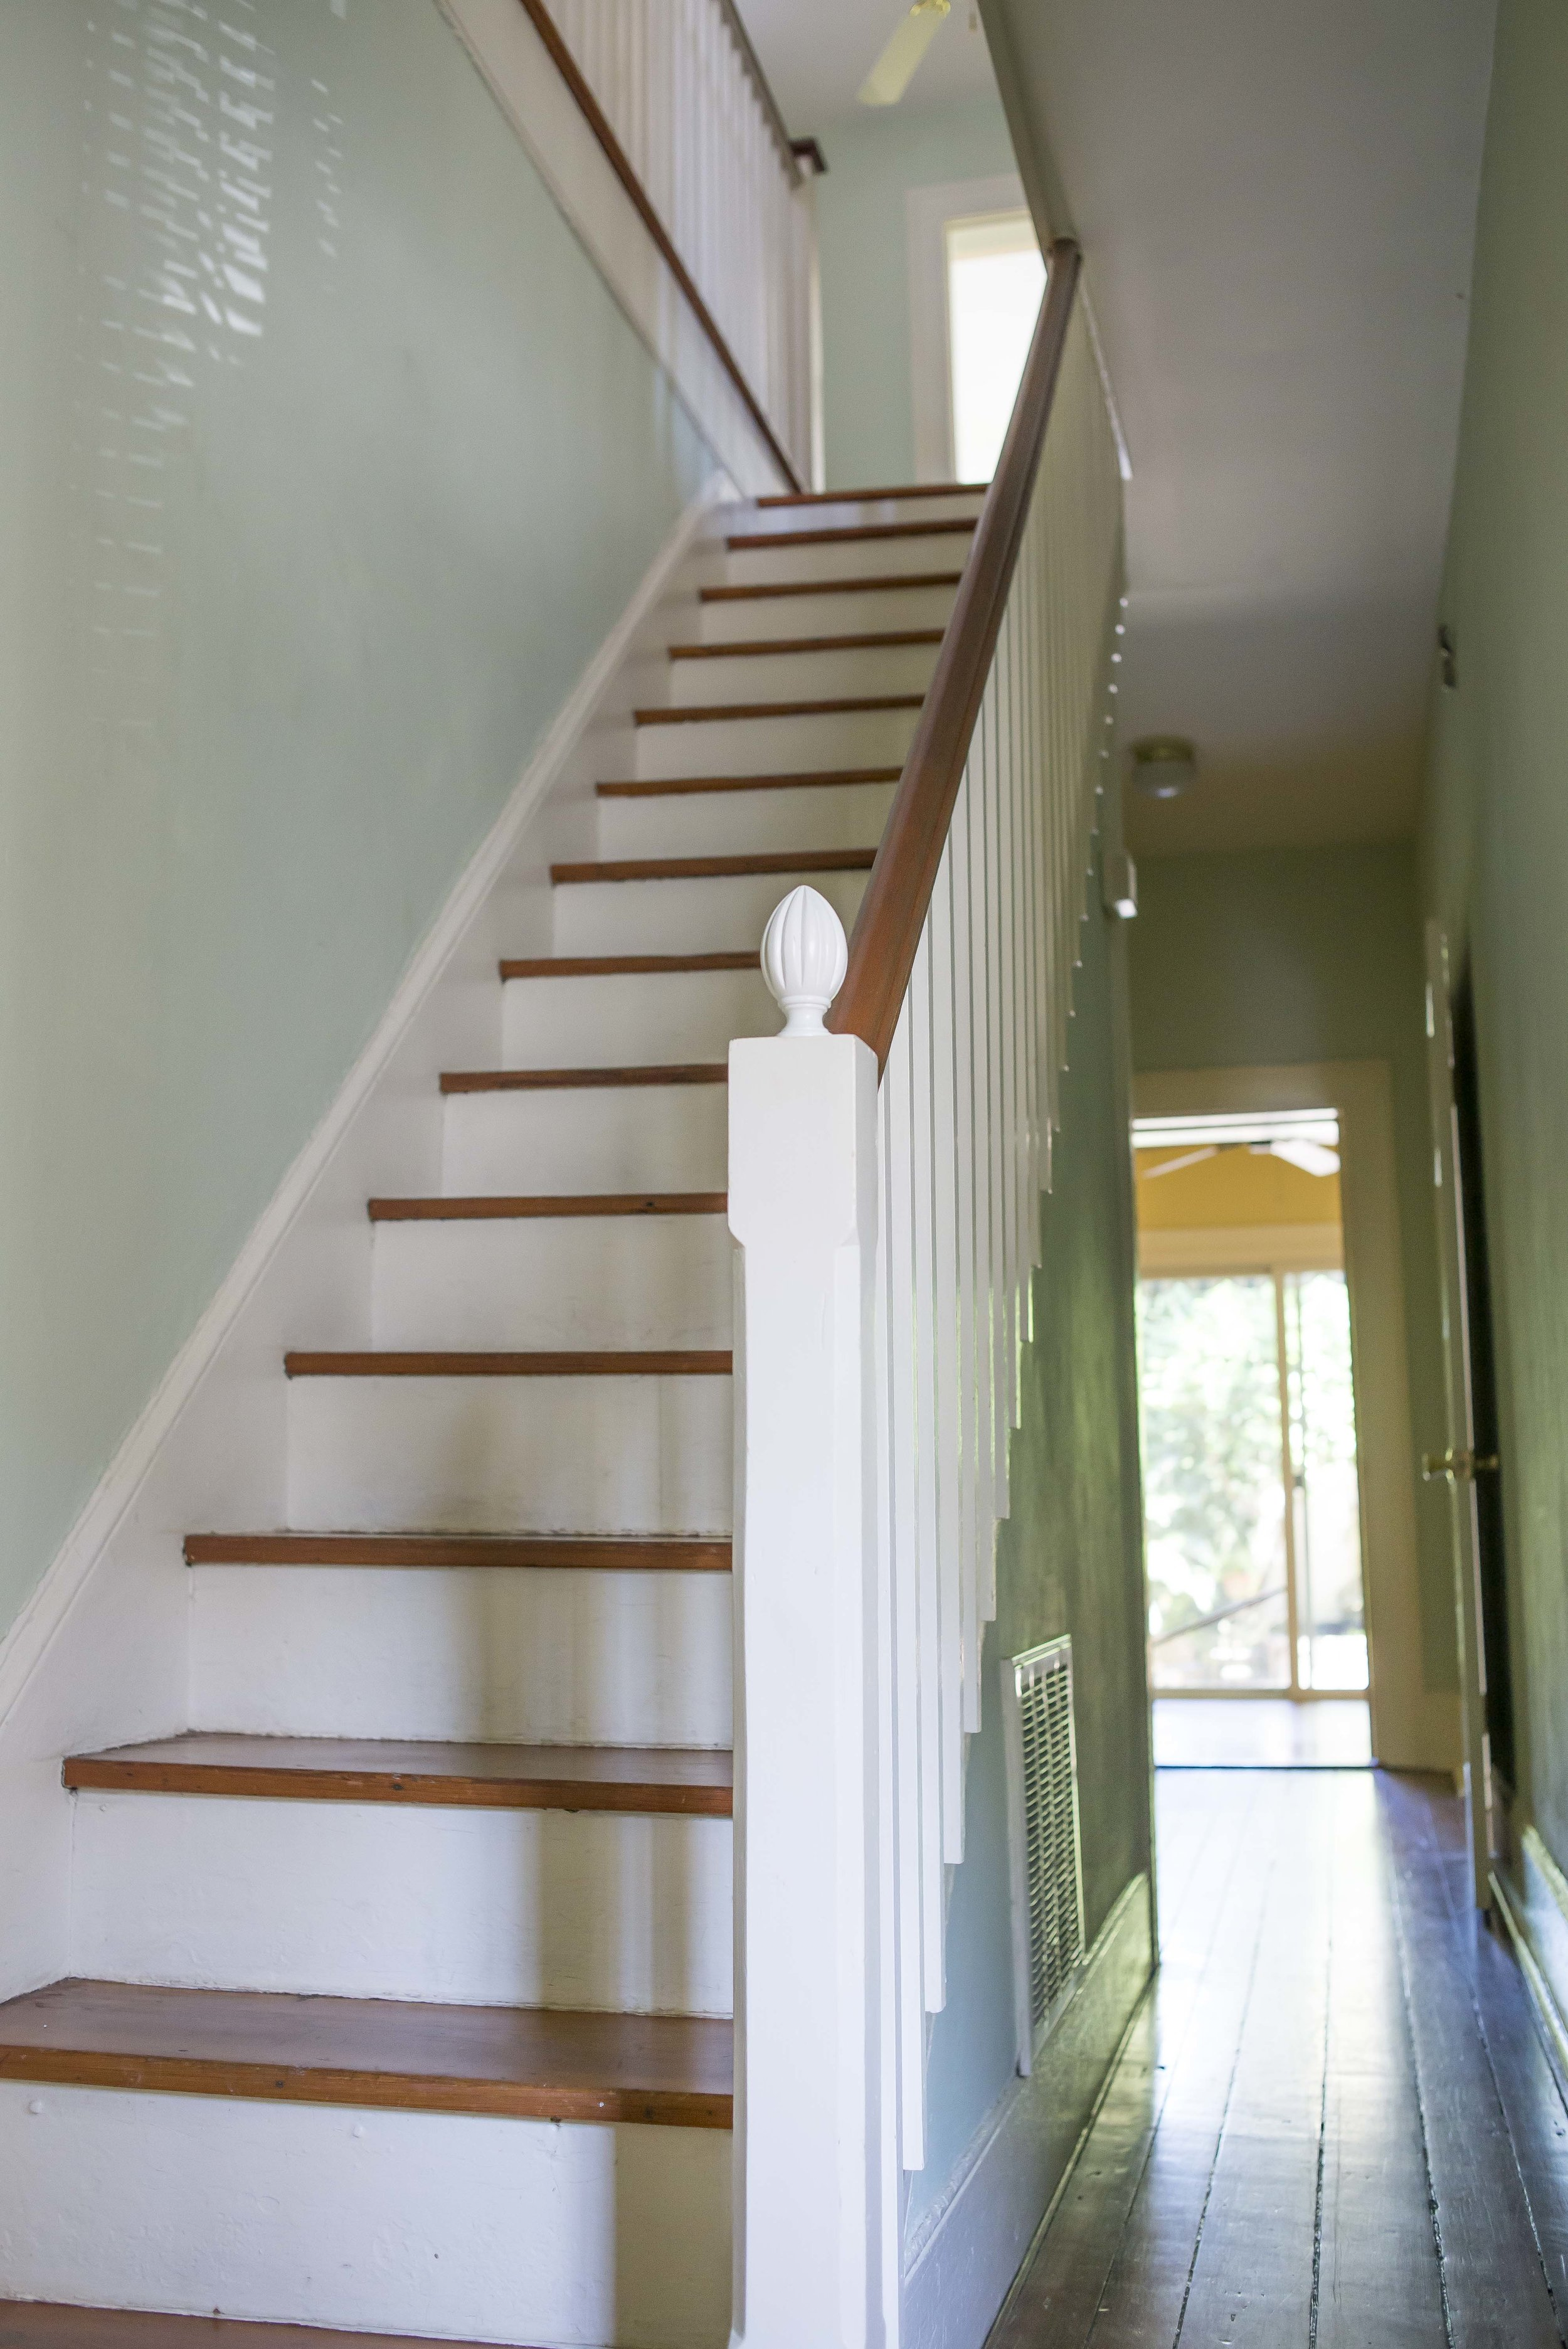 Yes, that is a curtain rod cap on the banister . . . lord have mercy